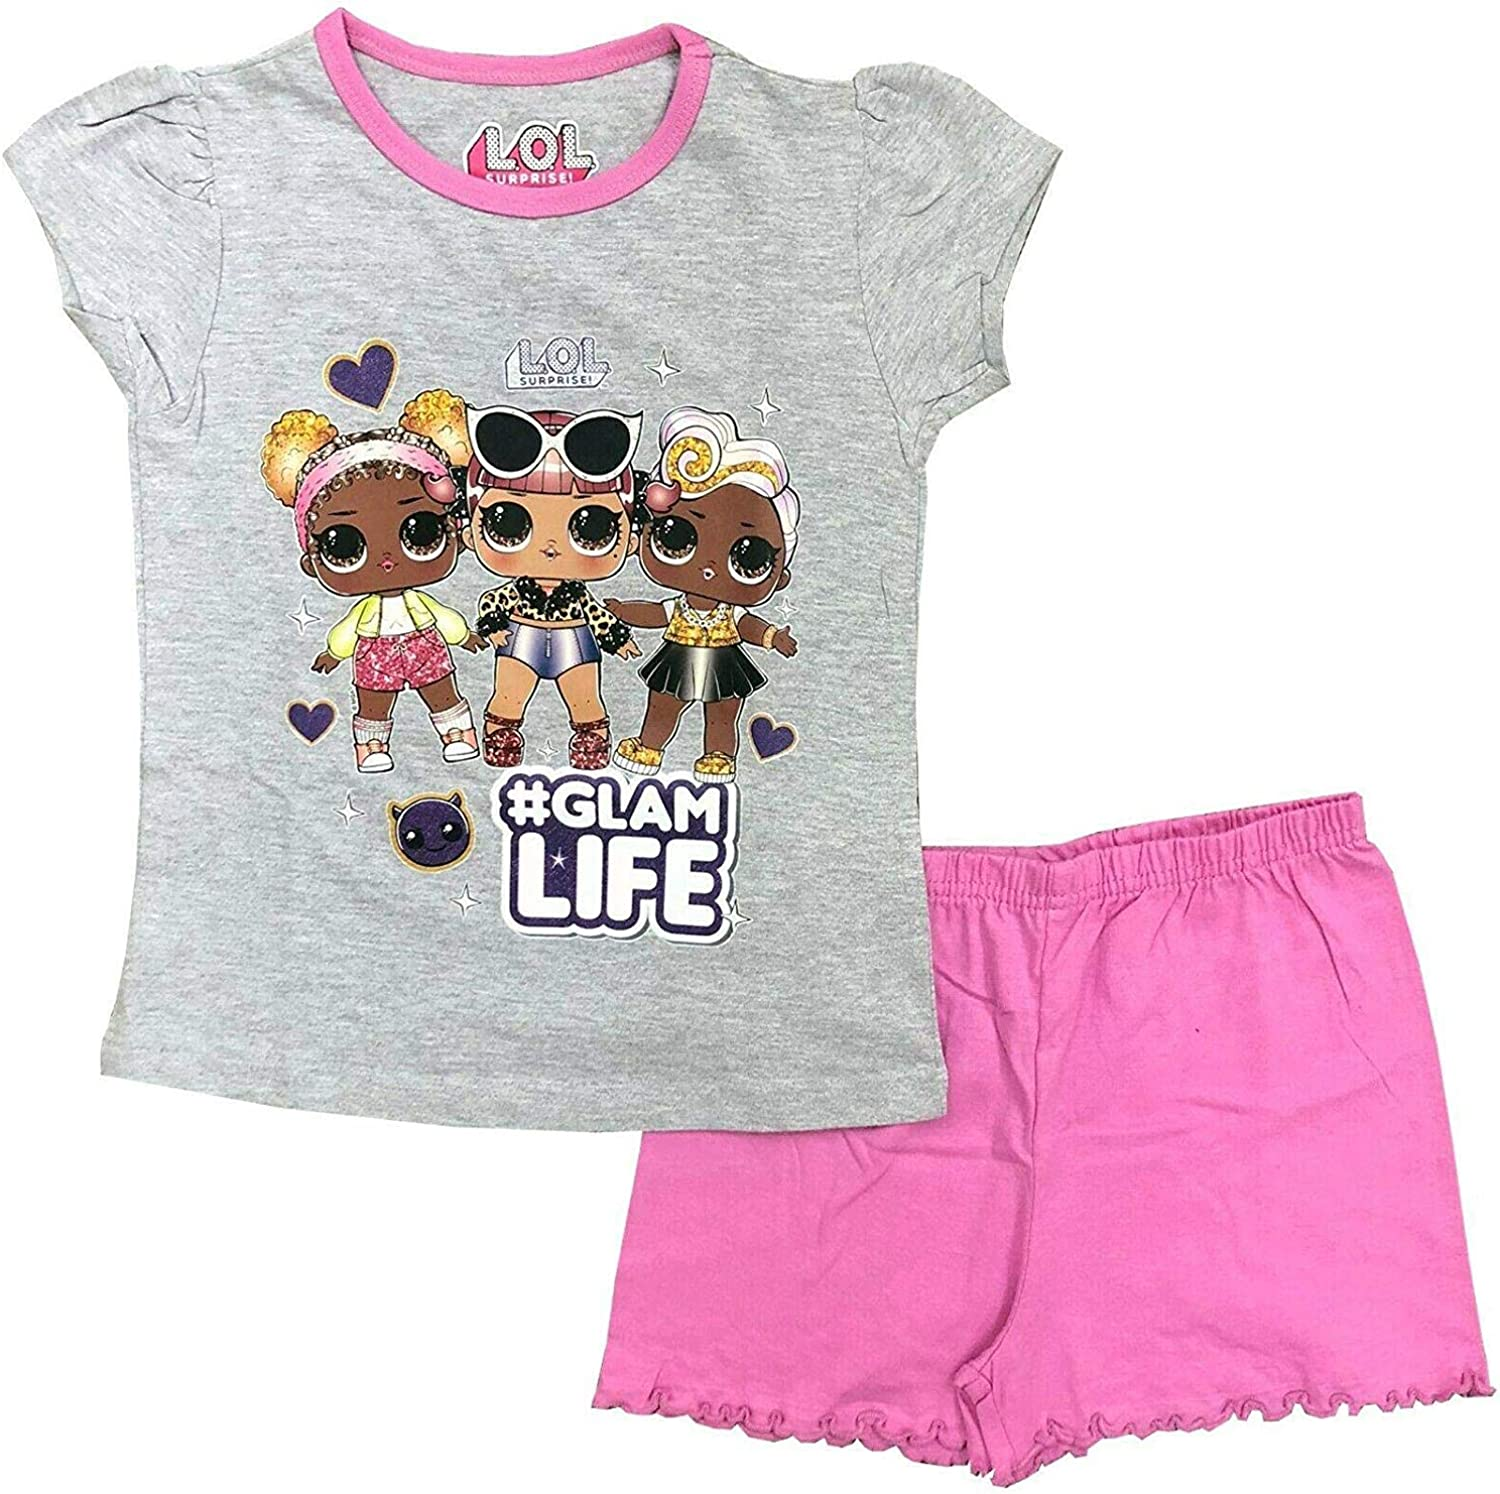 Girls LOL Surprise Dolls Pyjamas Long Sleeve Sizes from 4 years to 10 years